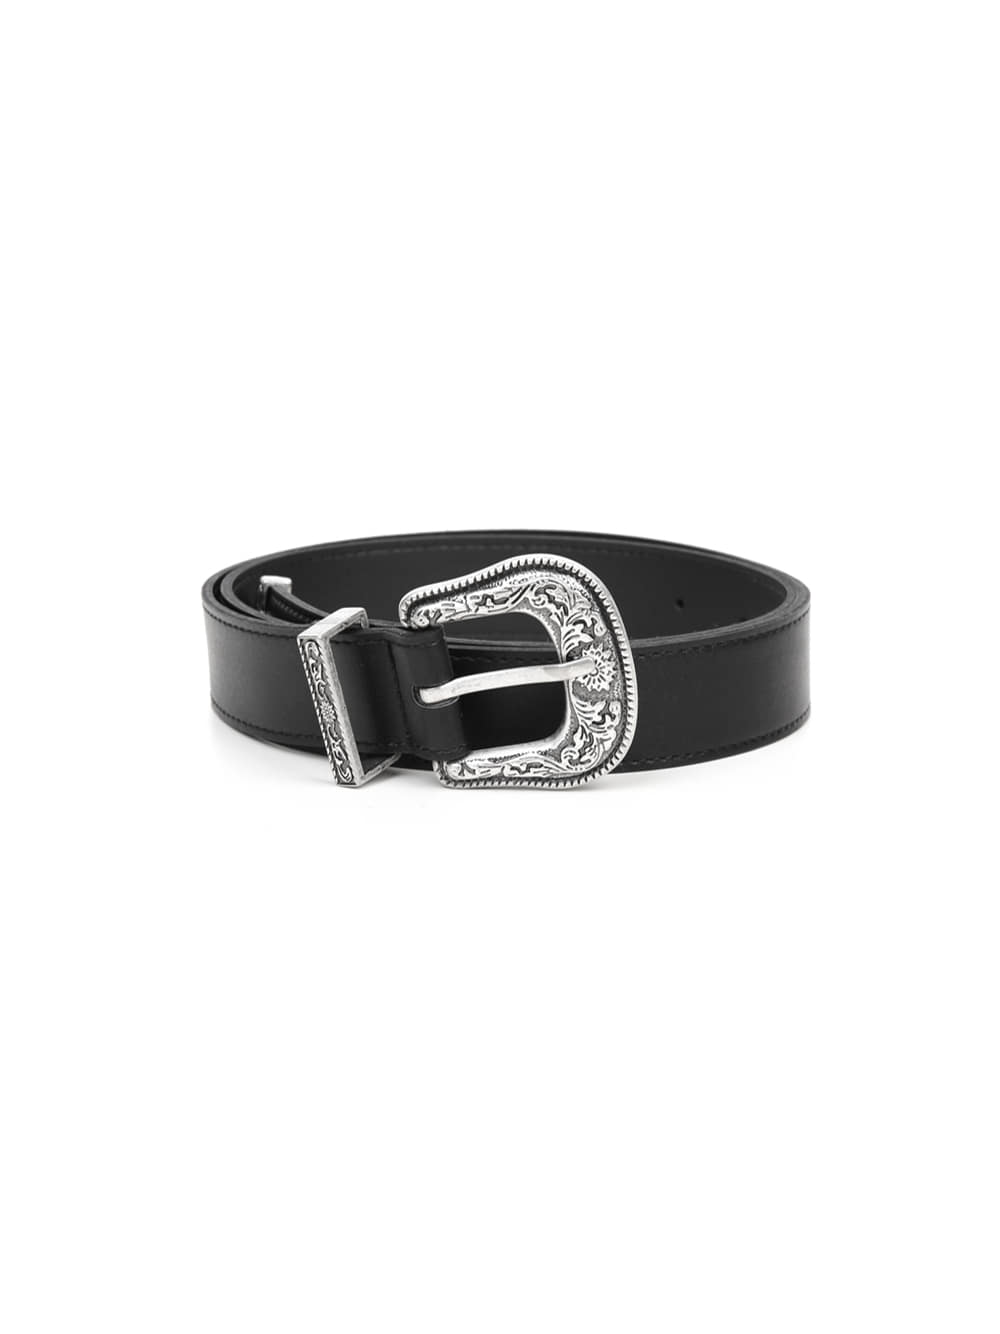 leather western belt (2 color)